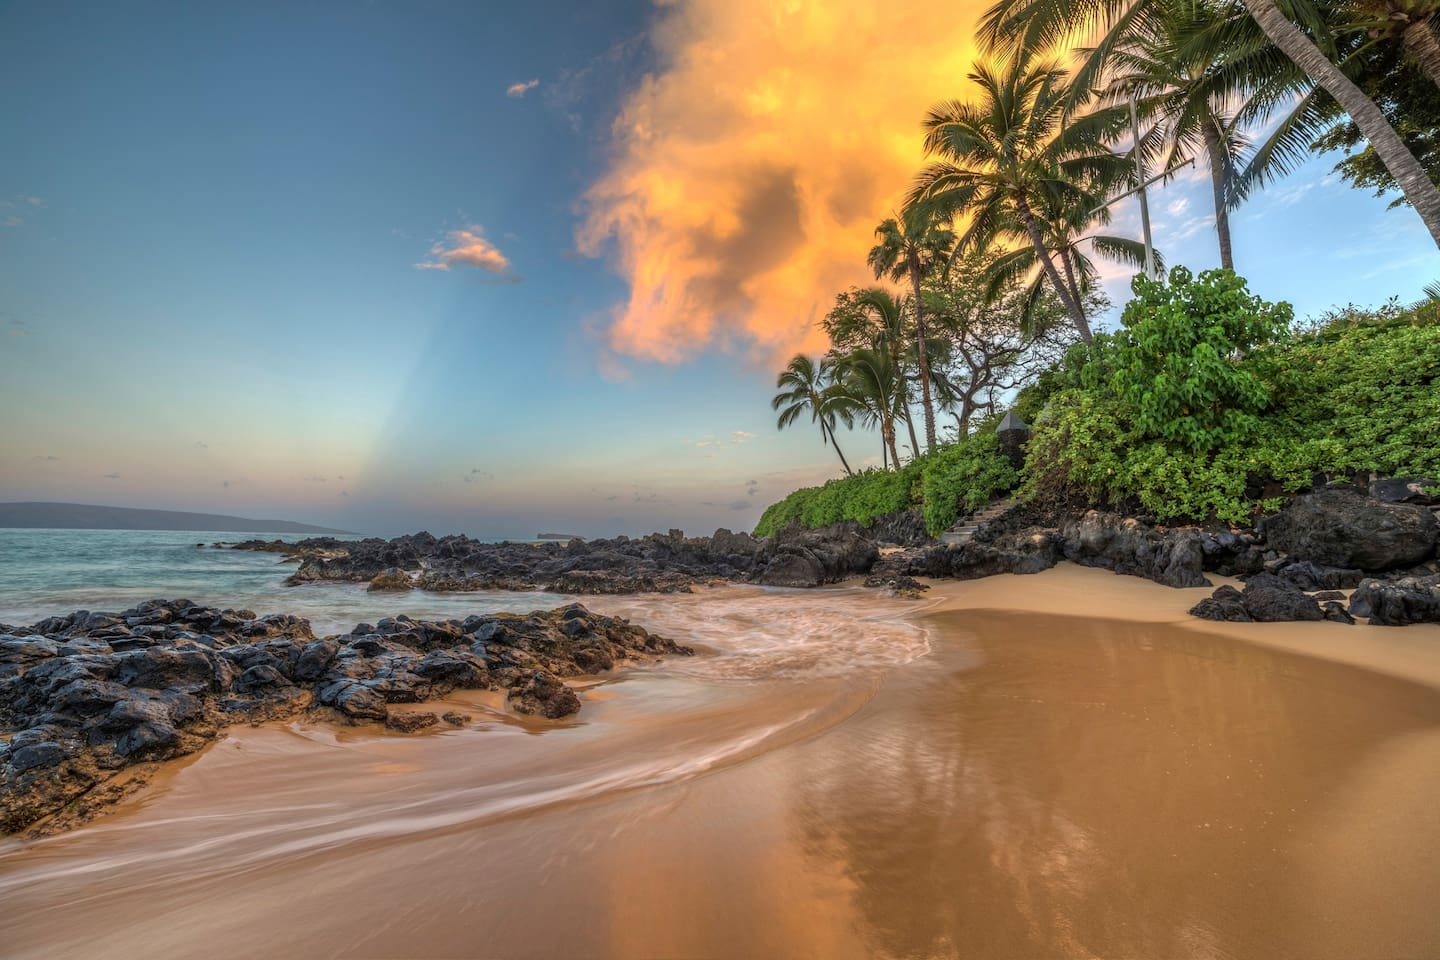 Soft, golden sandy beach in Wailea offering picture perfect views